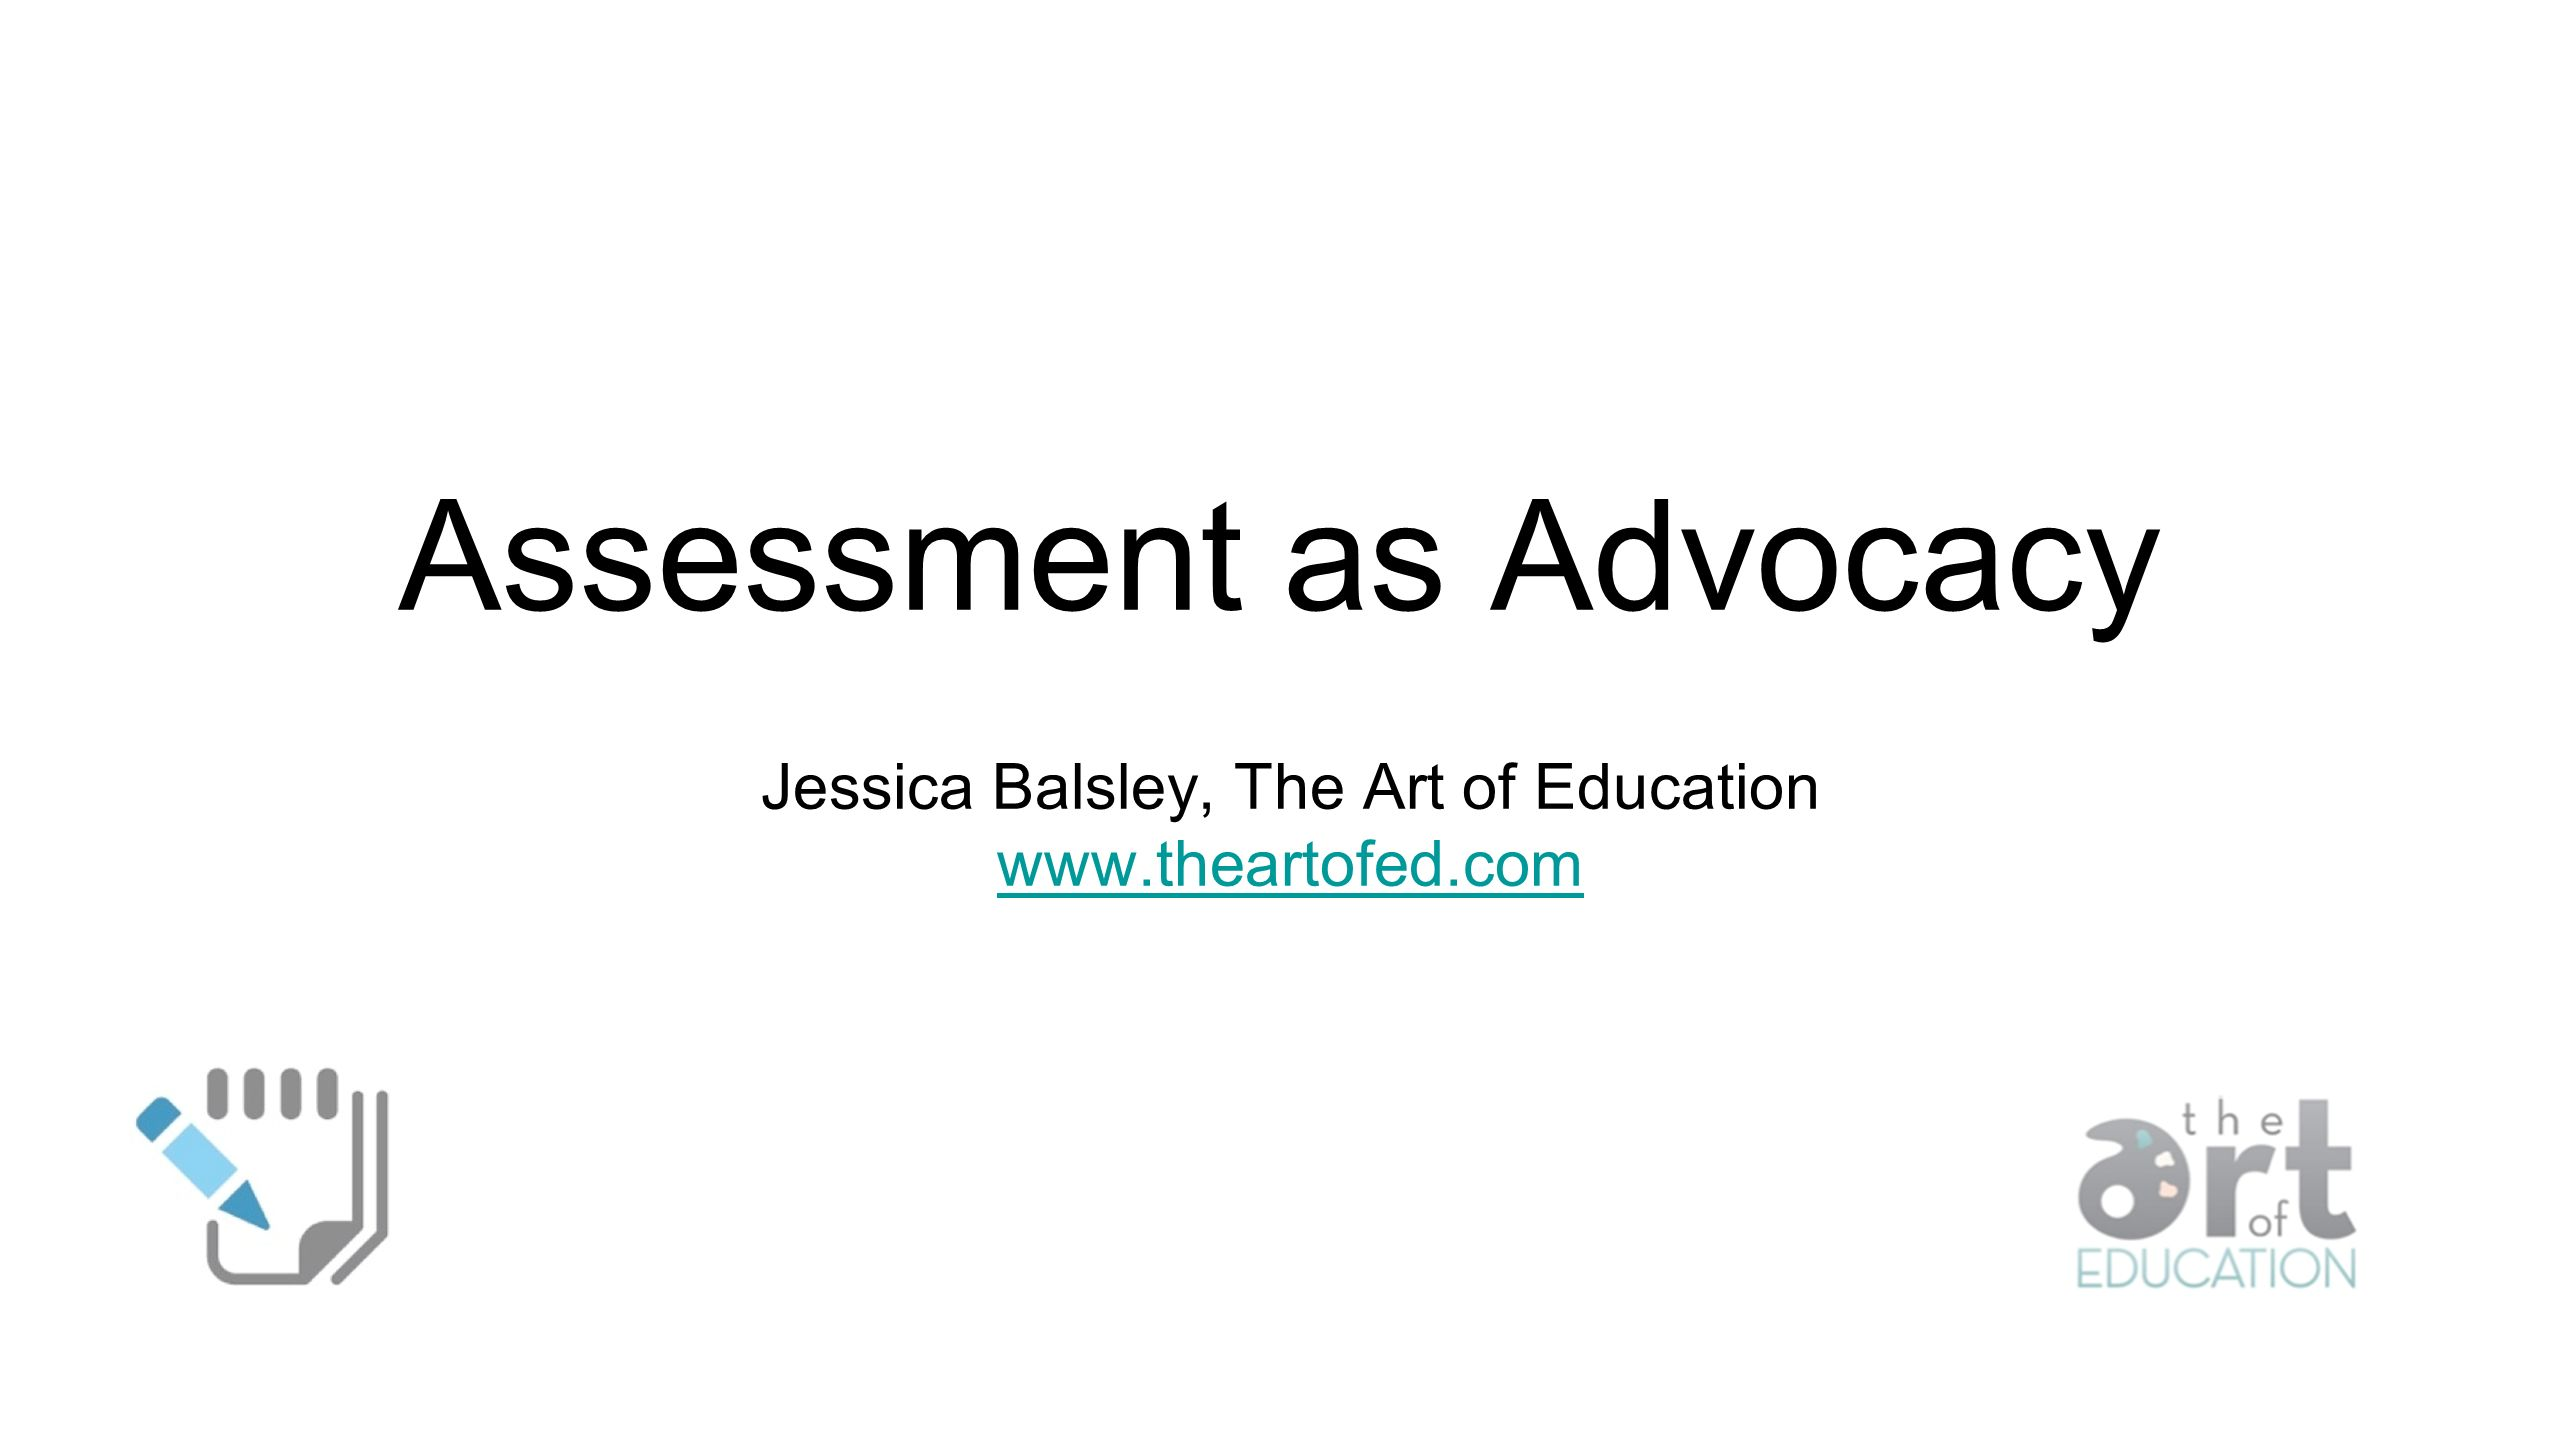 Assessment as Advocacy Jessica Balsley, The Art of Education www.theartofed.com